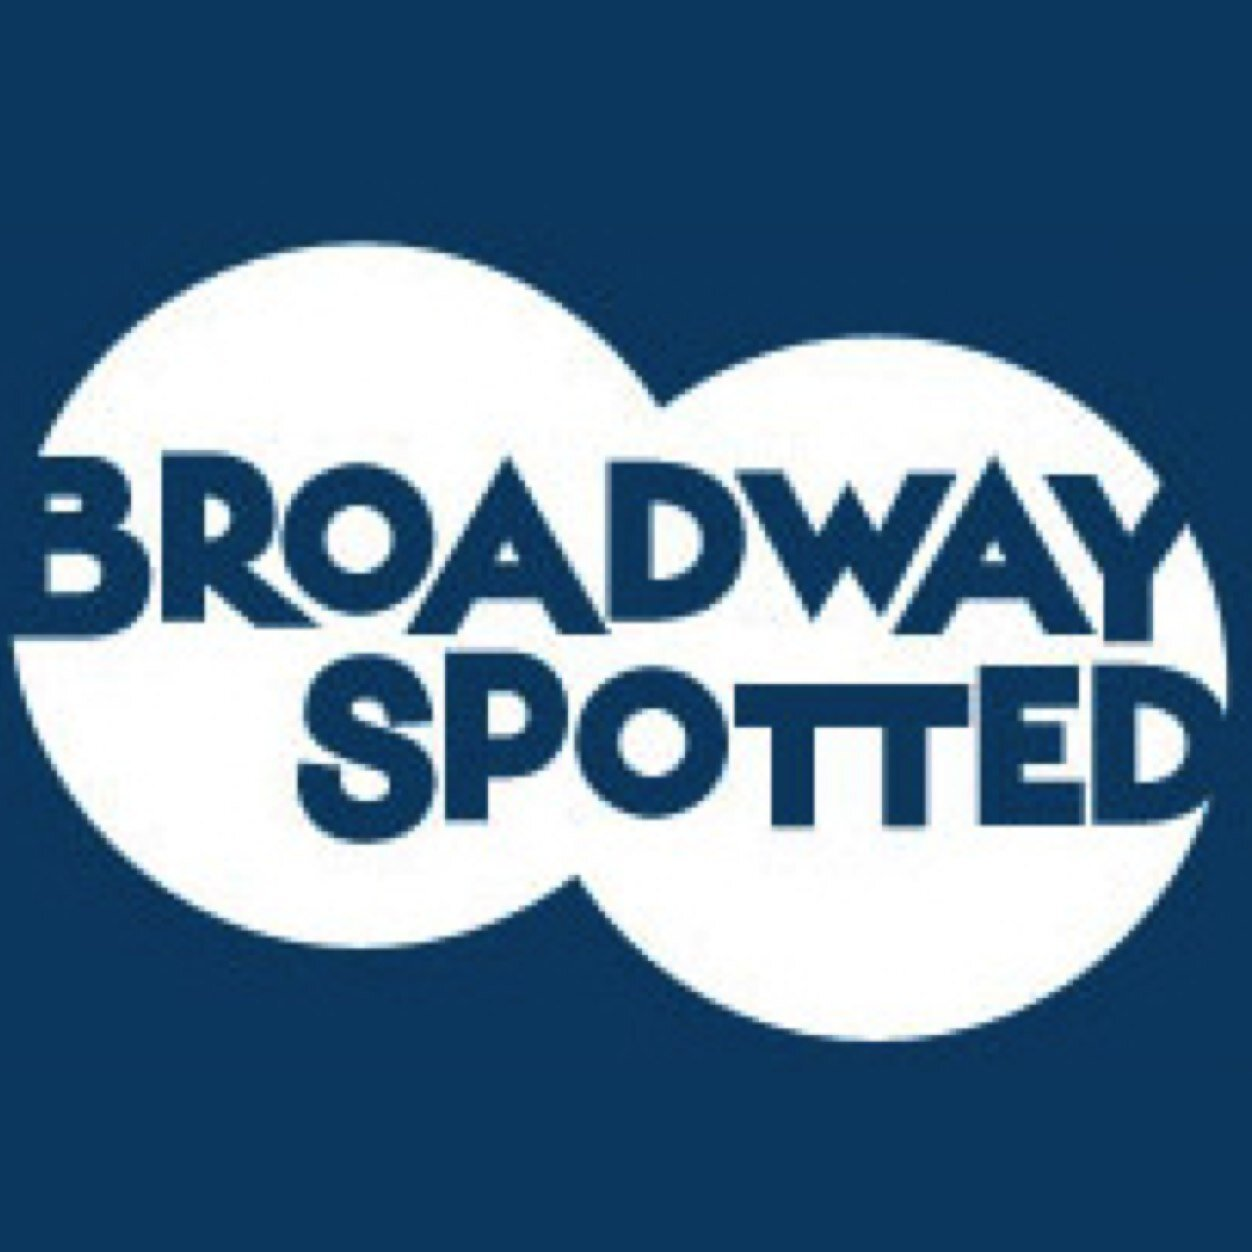 Broadway Spotted Social Profile